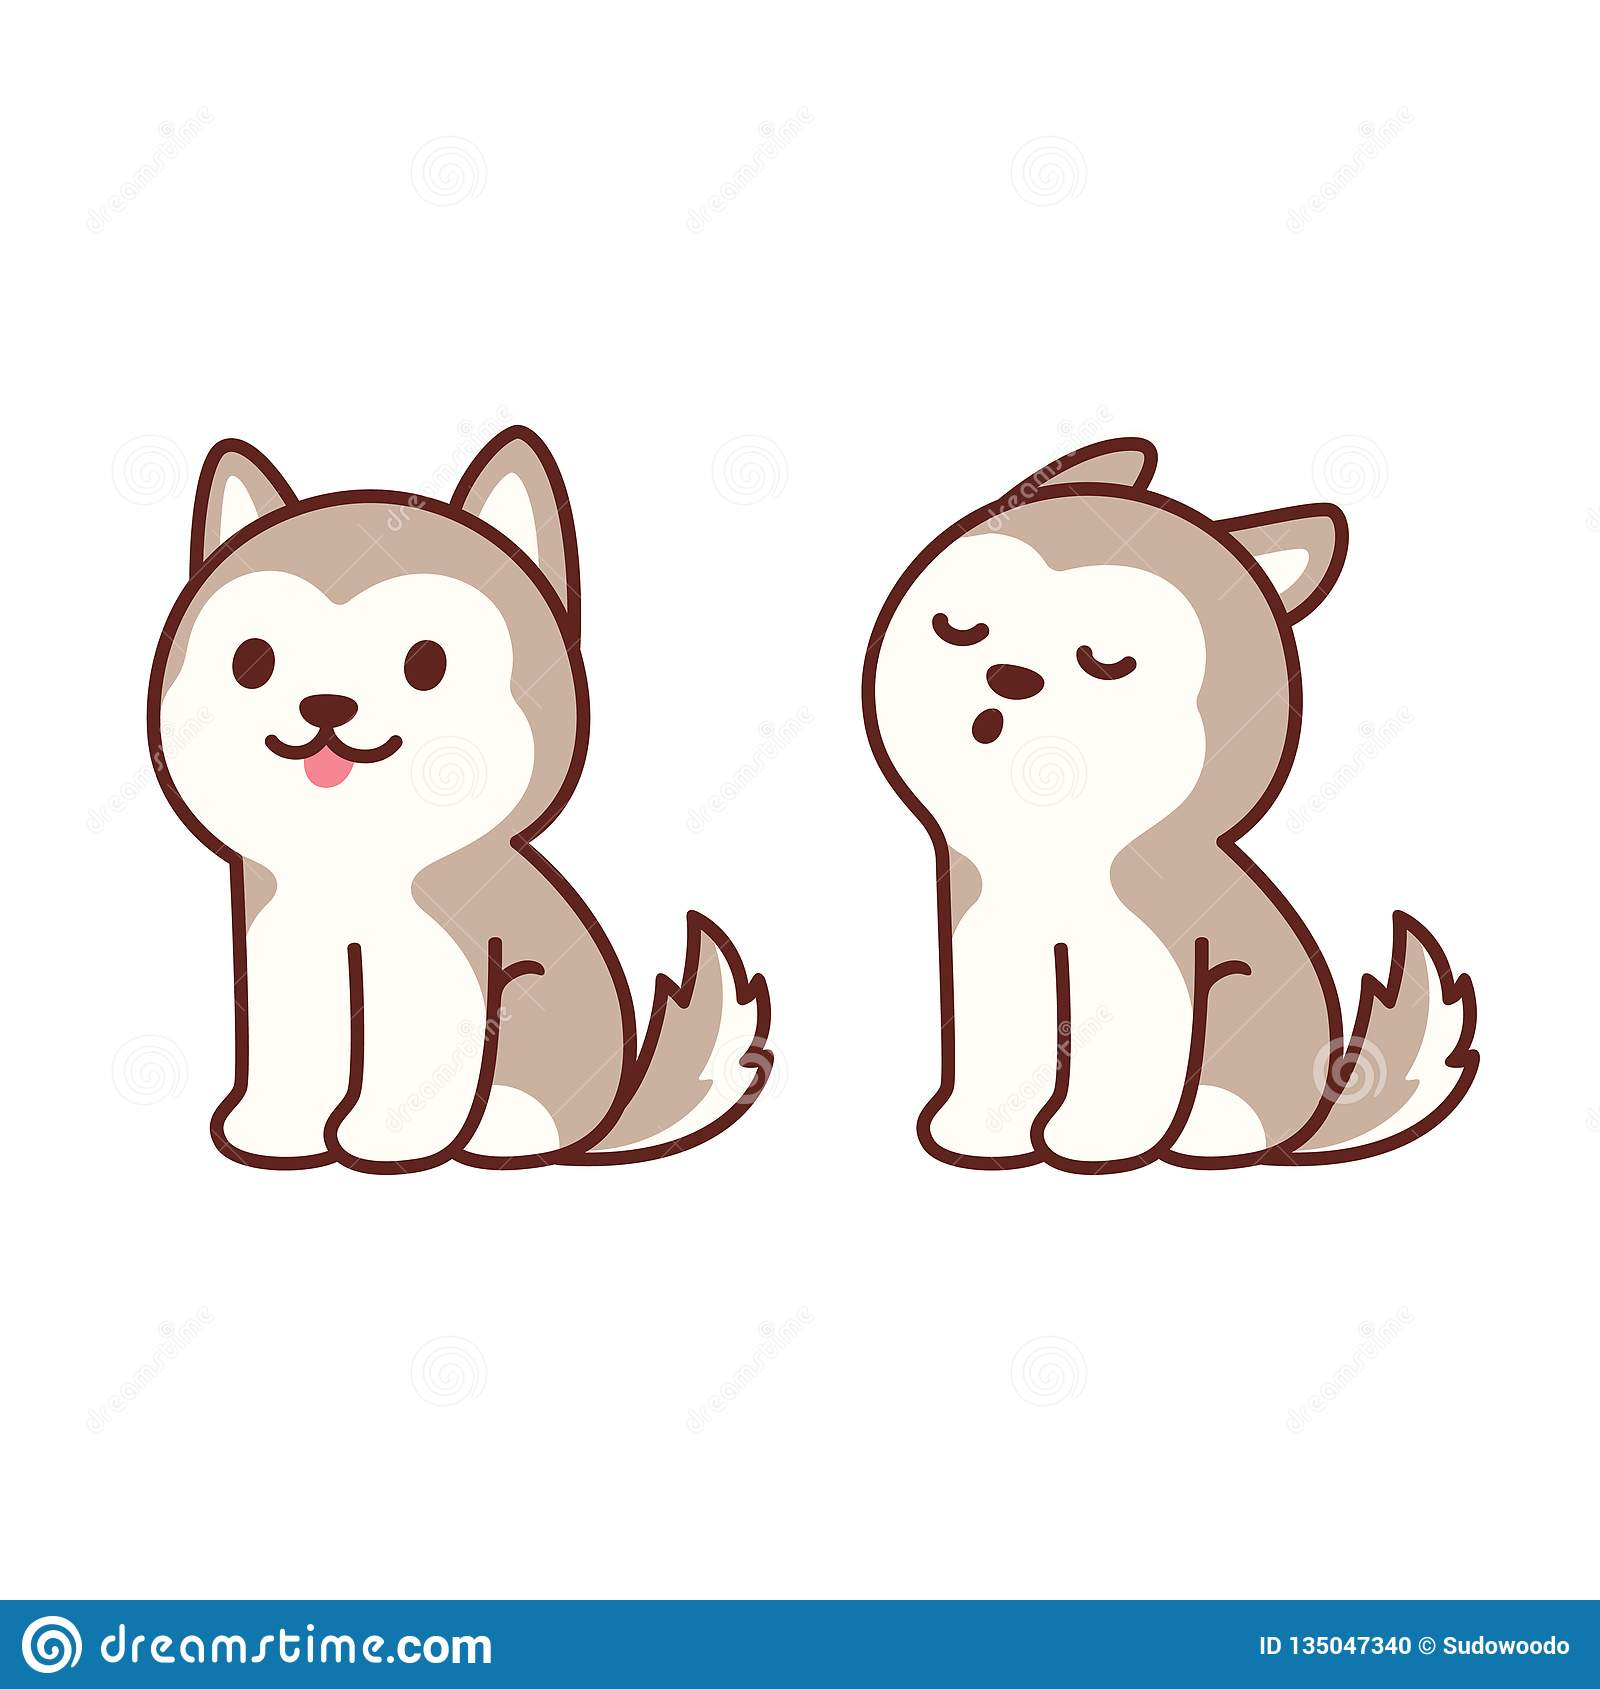 Cute Husky Puppy Howling Stock Vector Illustration Of Puppy 135047340